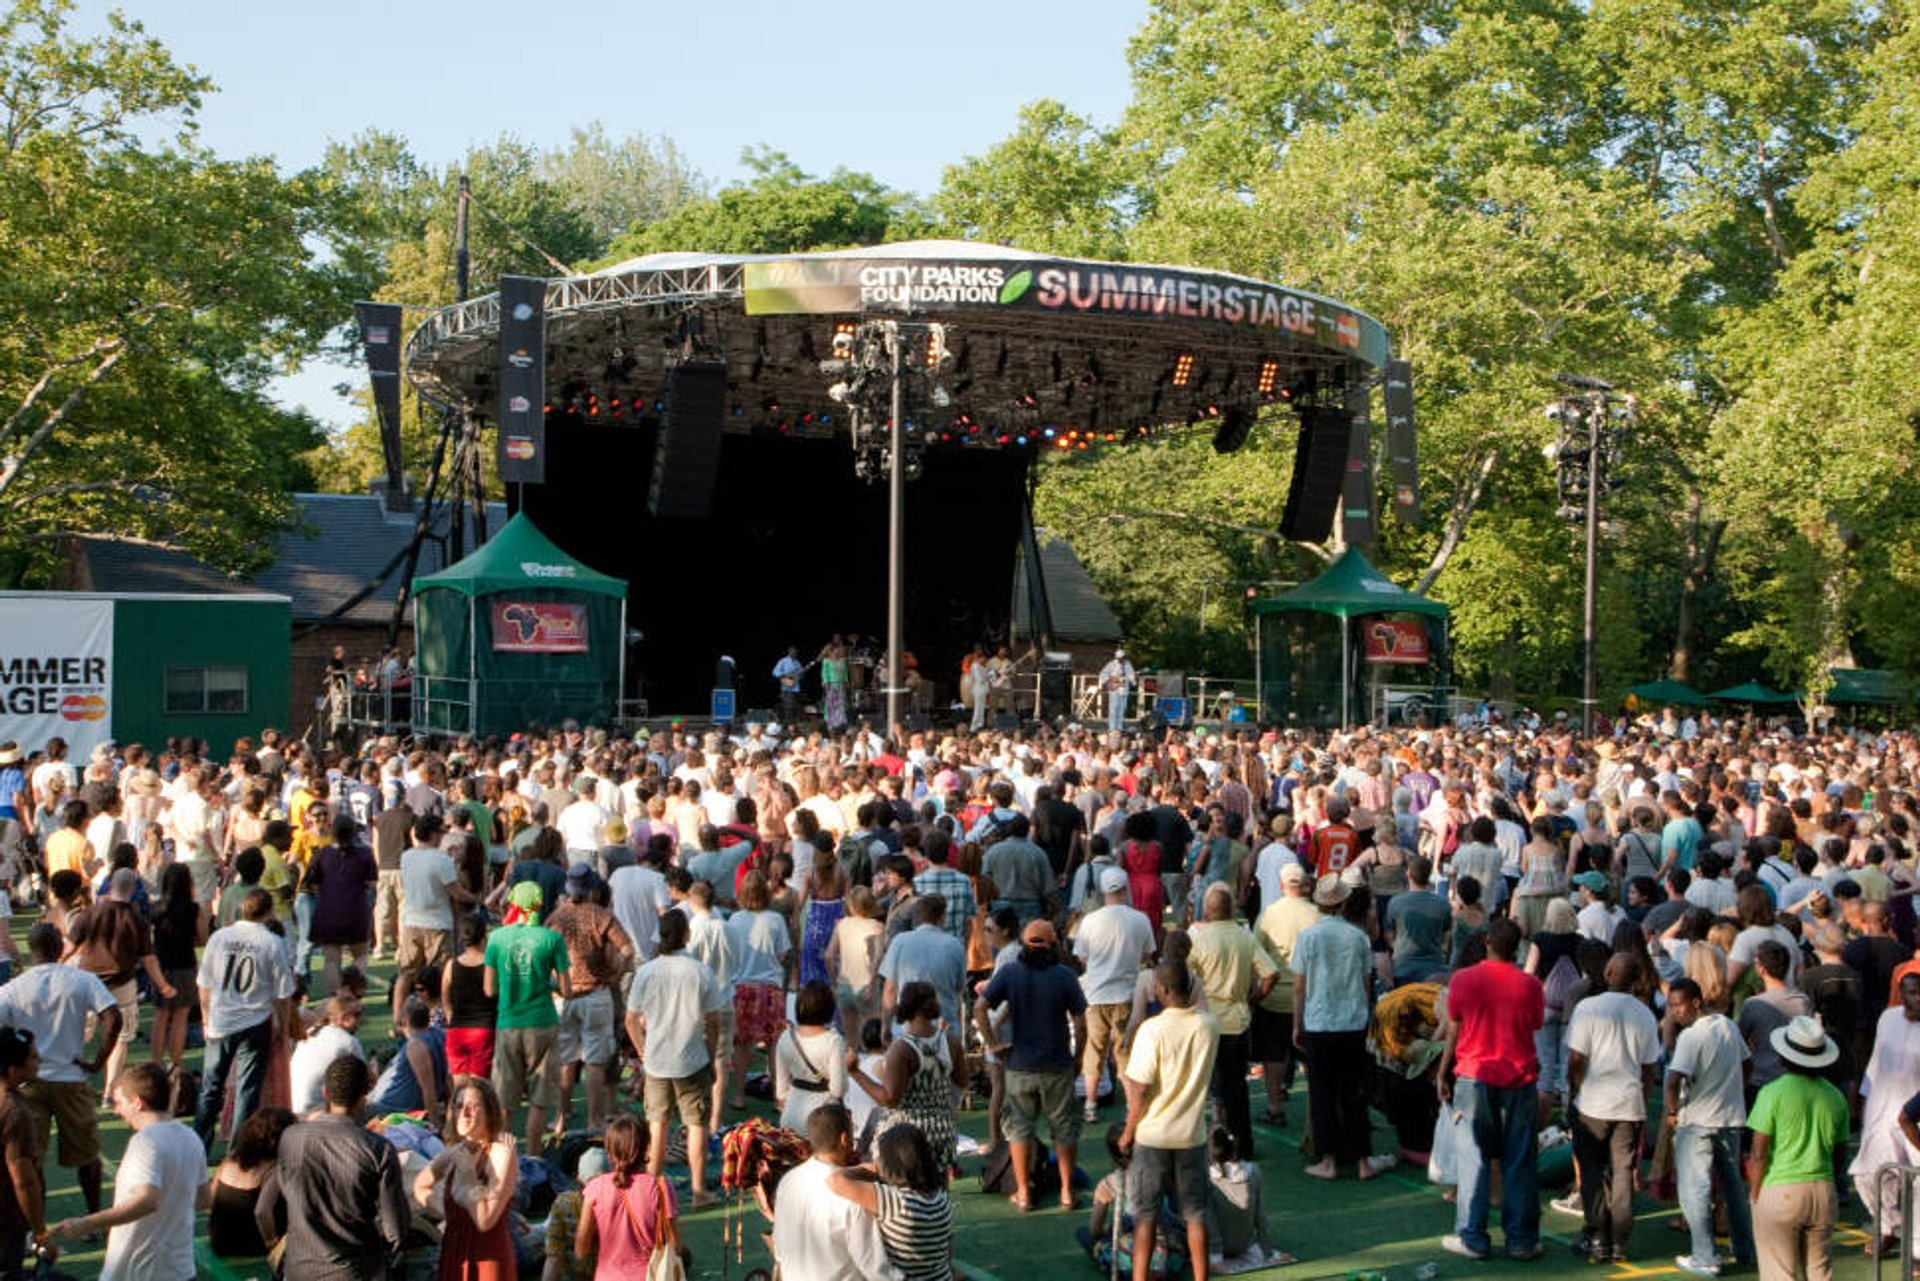 SummerStage in Central Park in New York 2020 - Best Time